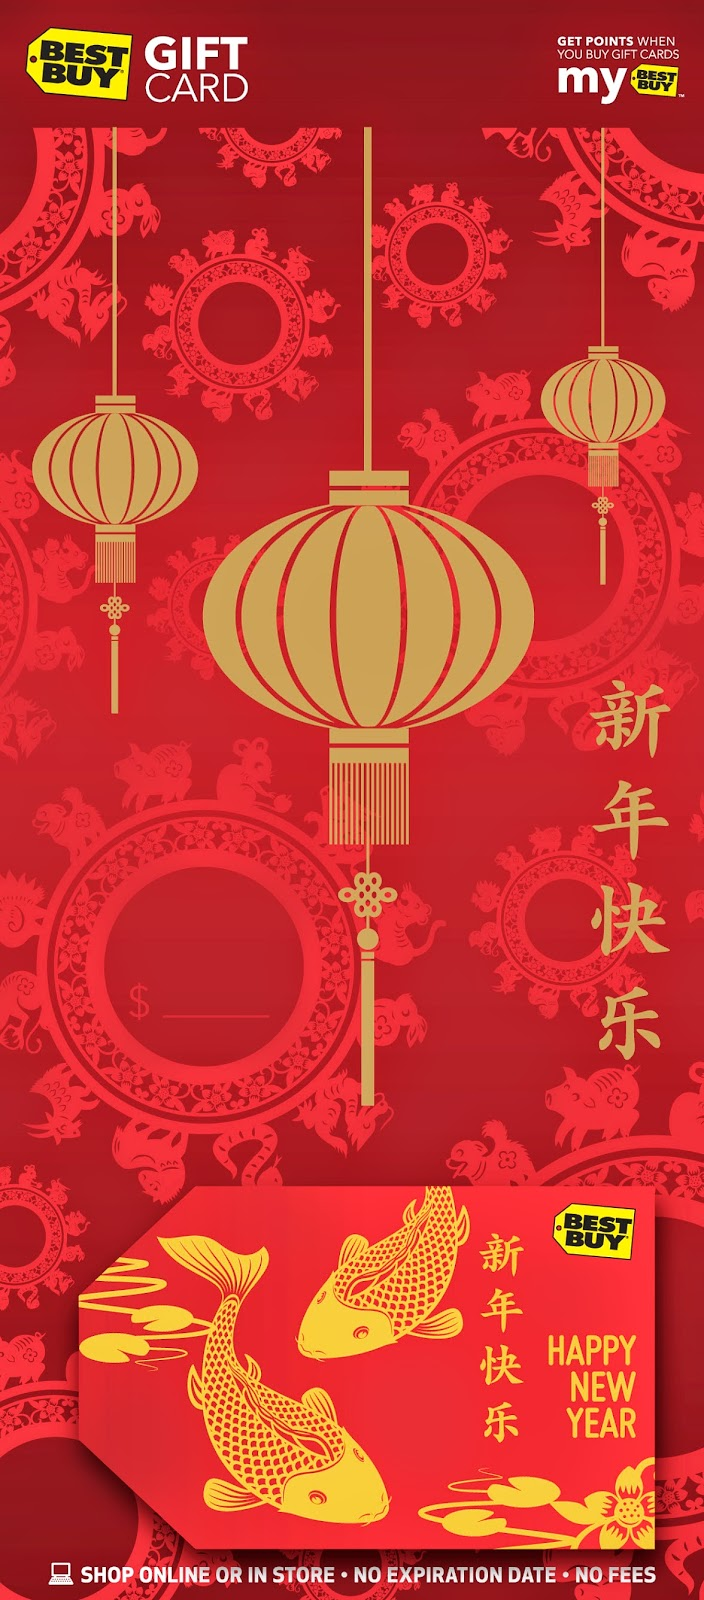 Celebrate the Lunar New Year With These Beautiful Gift Cards From Best Buy